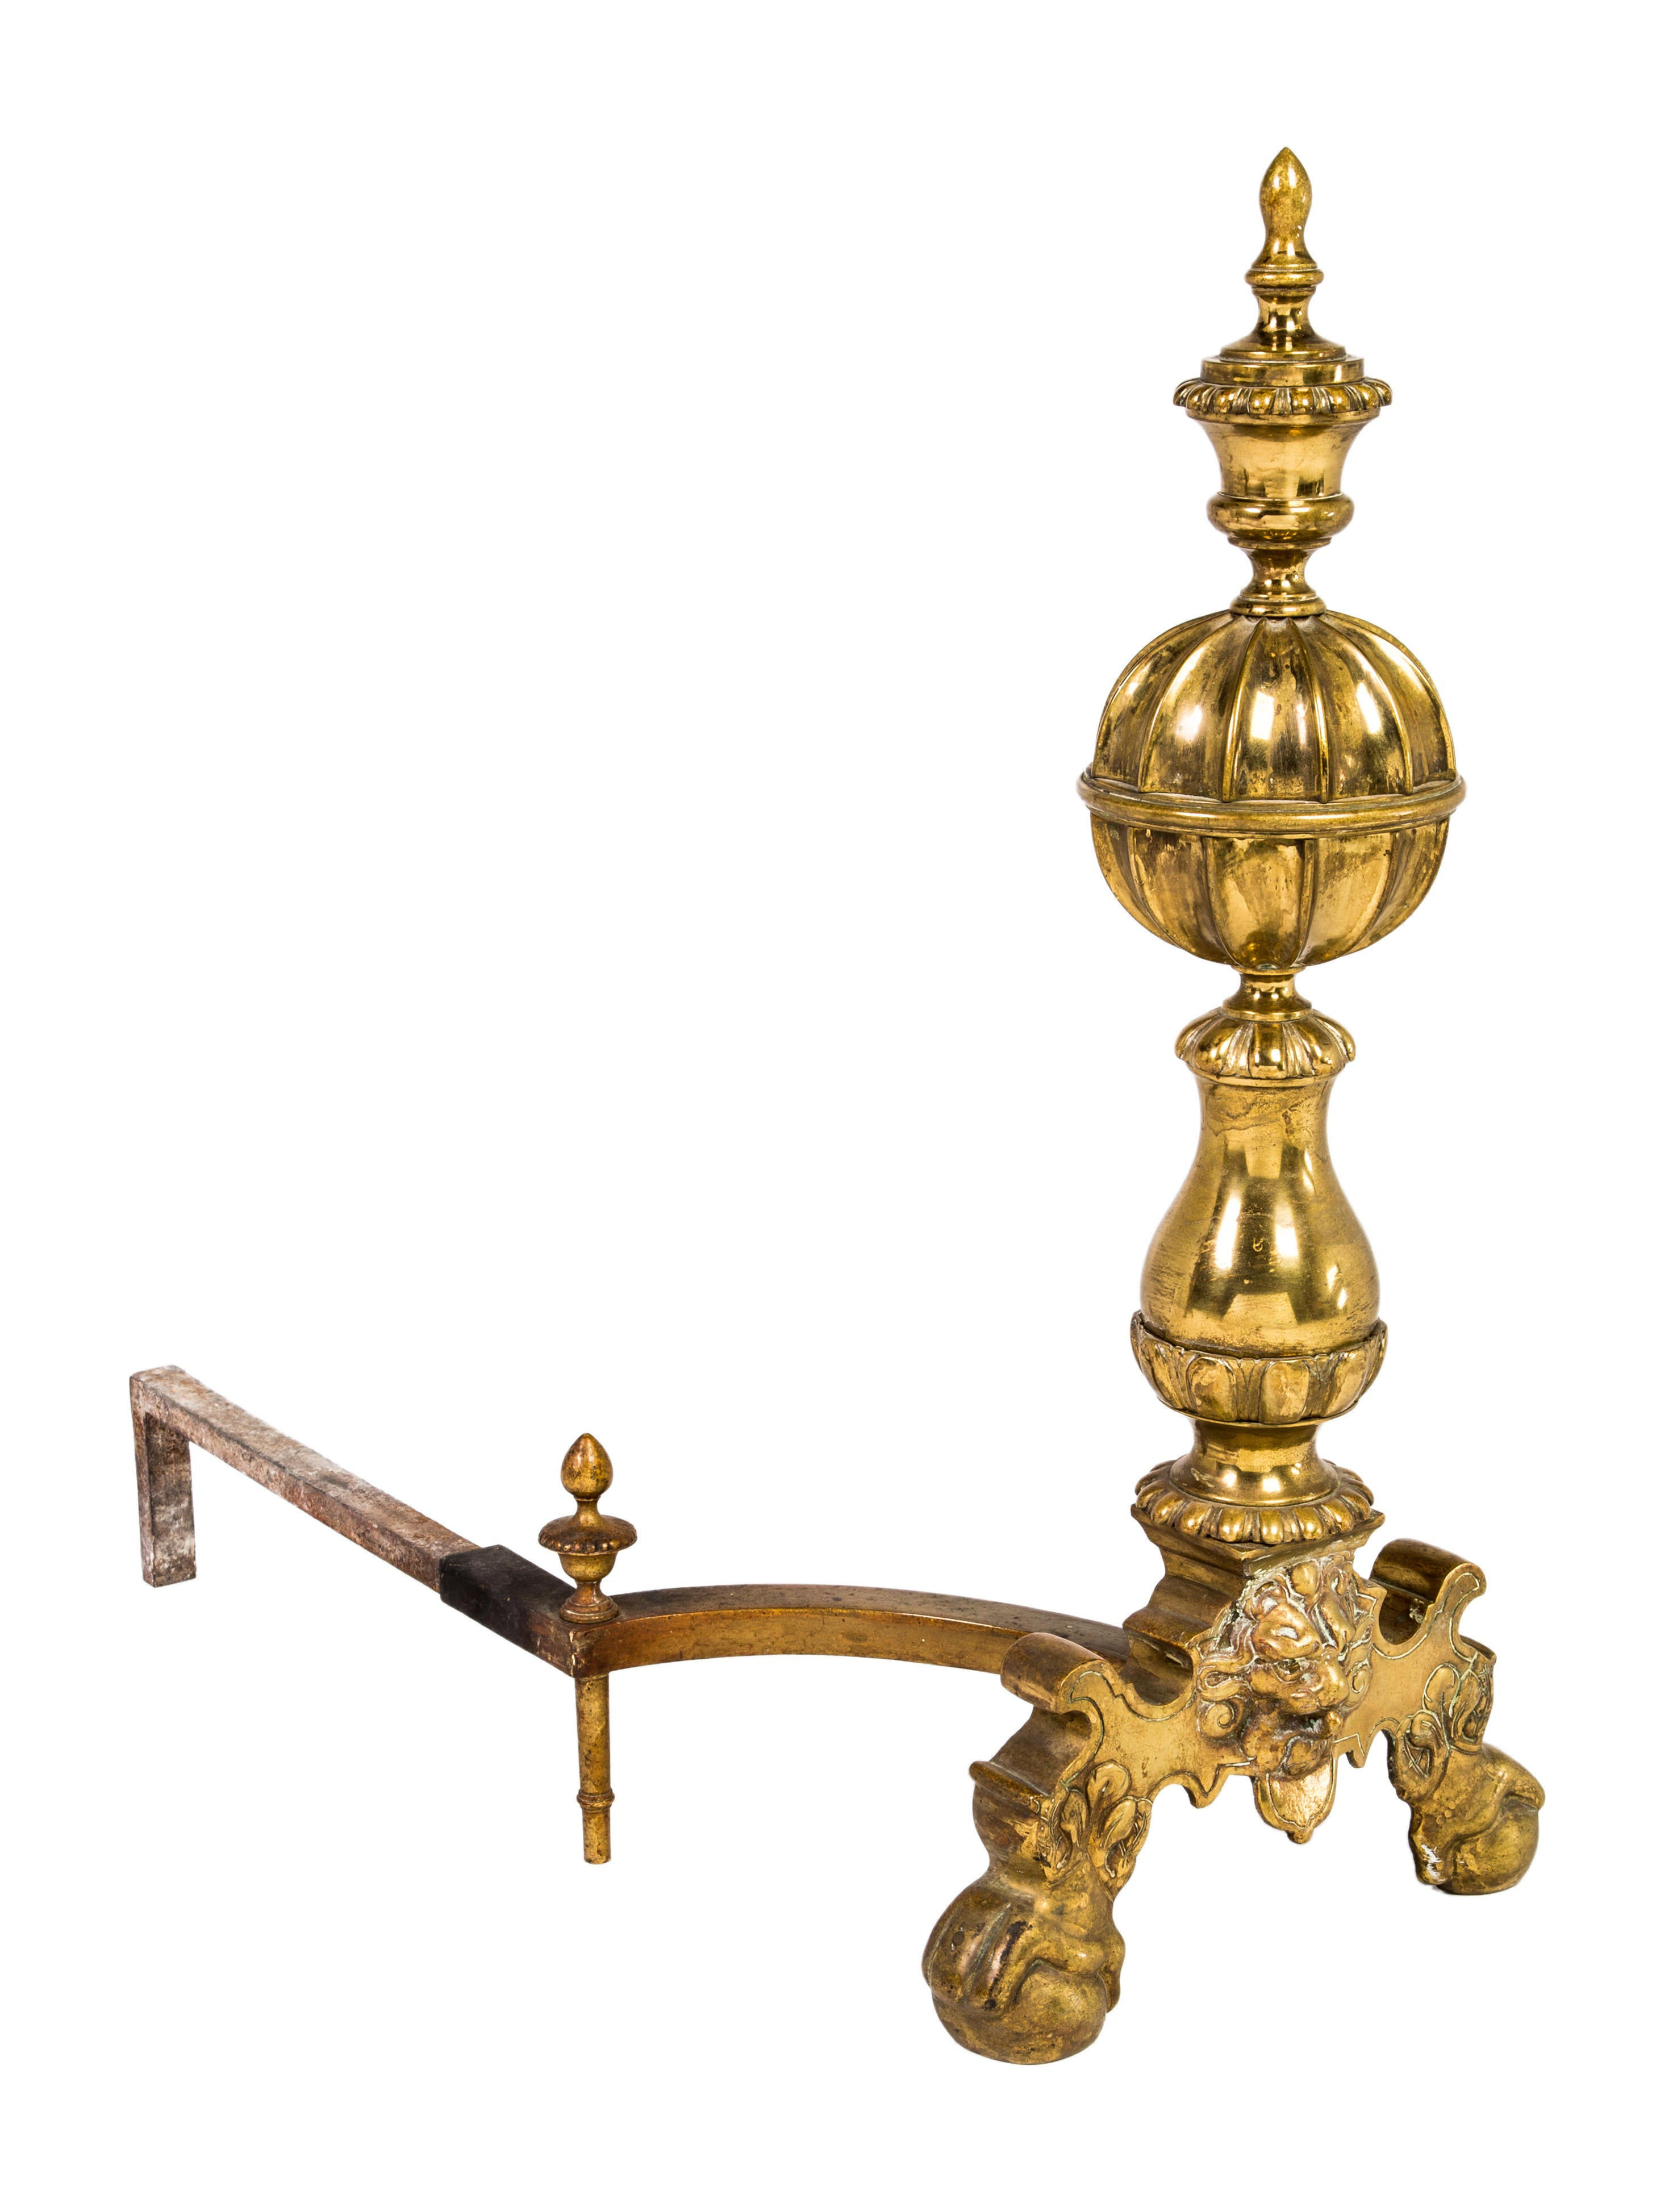 Brass lion andirons decor and accessories decor20911 for Brass home decor